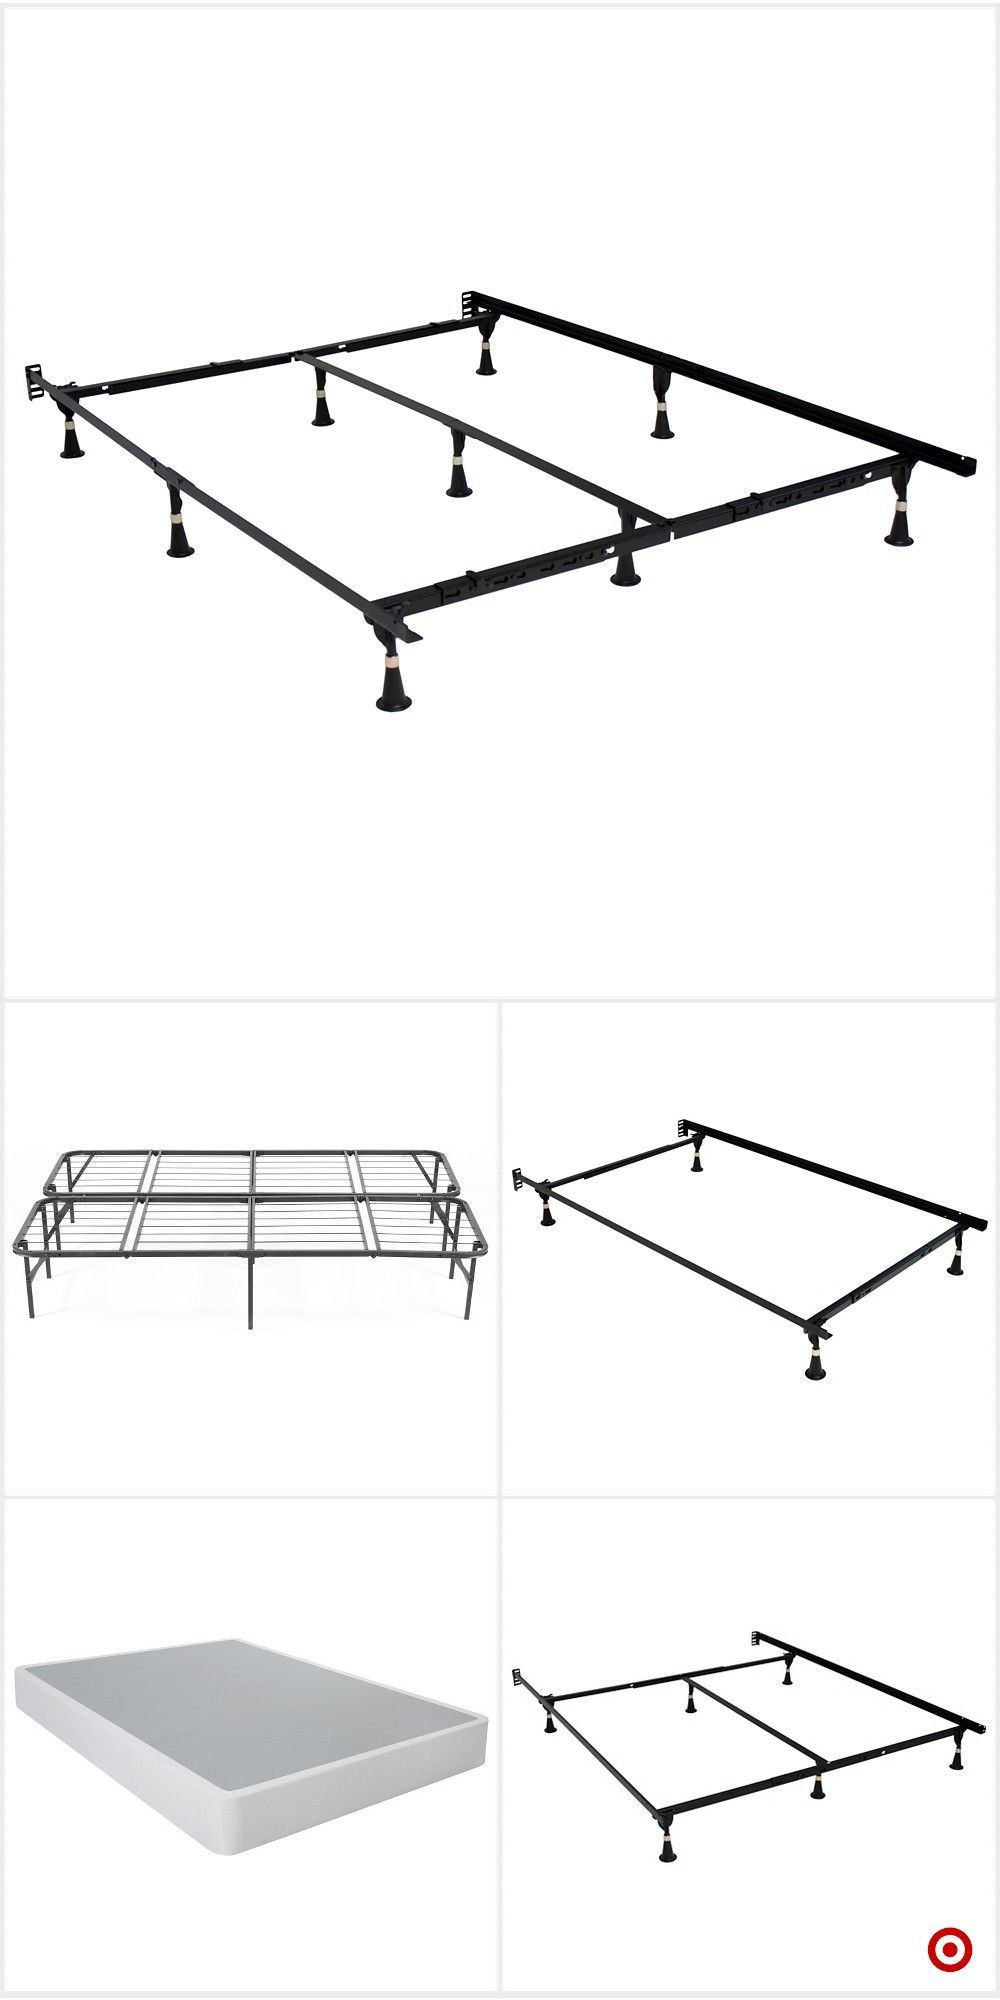 Luggage Rack Target Prepossessing Shop Target For Bed Frame You Will Love At Great Low Pricesfree 2018